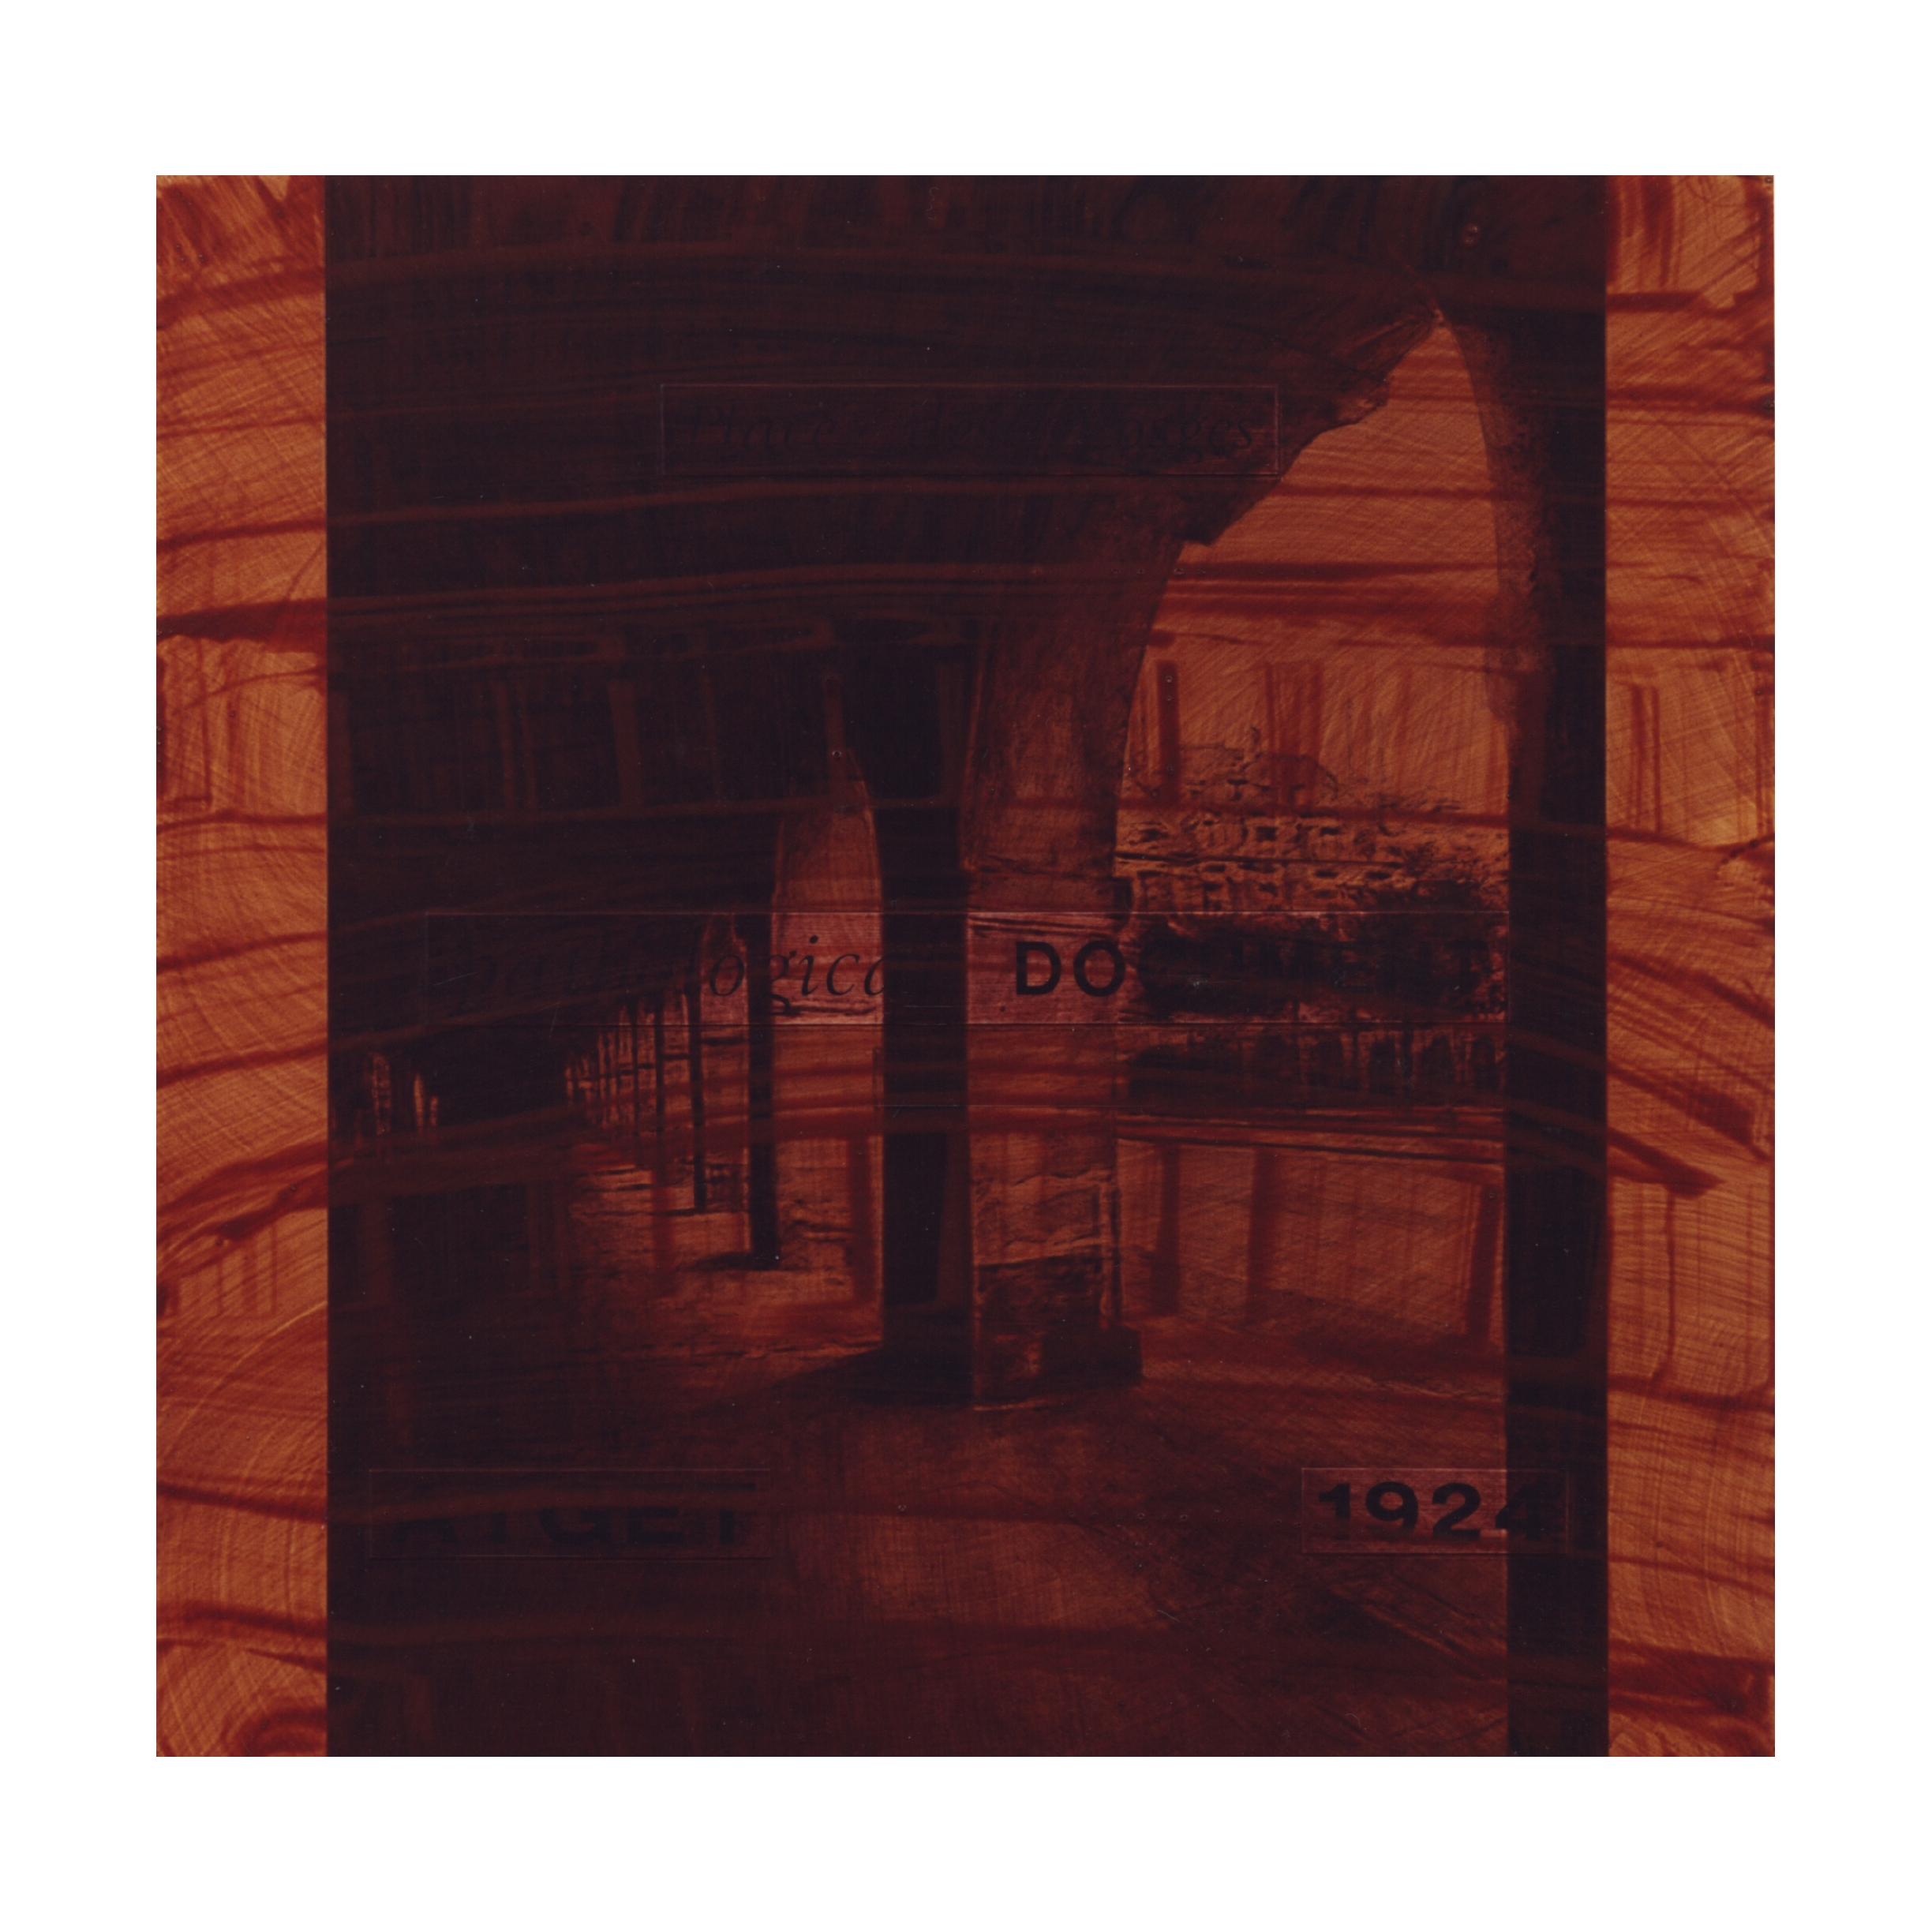 pathological  DOCUMENT  (after Atget, 1924 / Place des Vosges)    16x16, acrylic on MDF, 1995